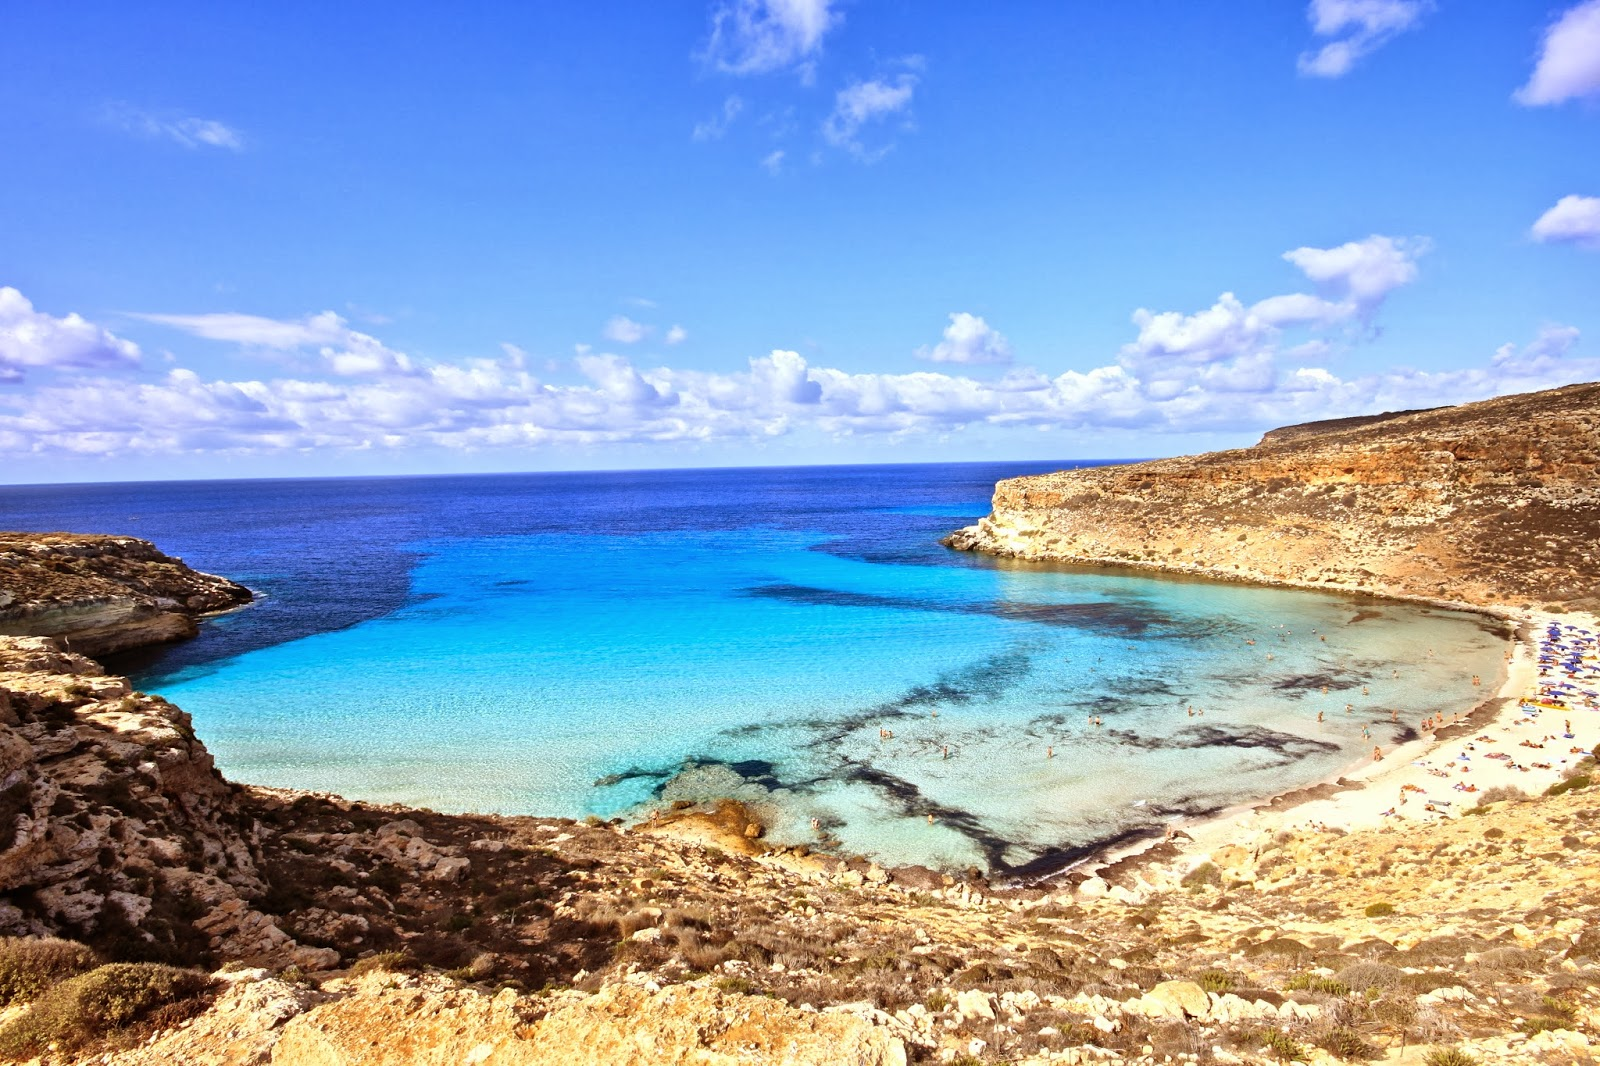 Rabbit Beach, Lampedusa, Italy - Top 10 Most Breathtaking Beaches In The World